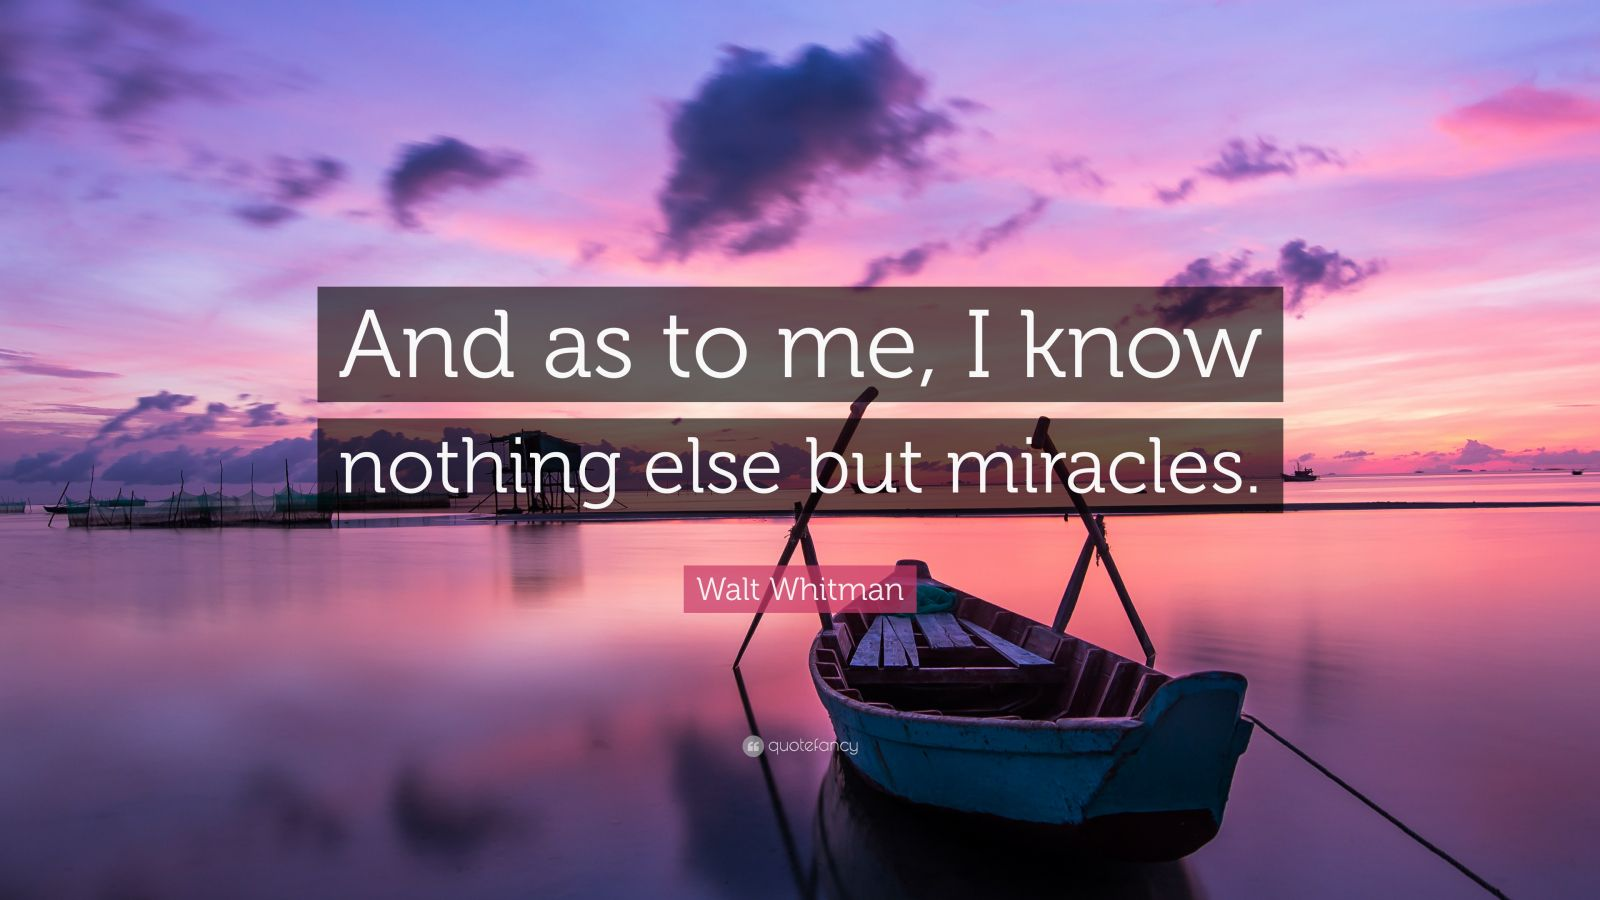 """Walt Whitman Quote: """"And as to me, I know nothing else but miracles."""""""